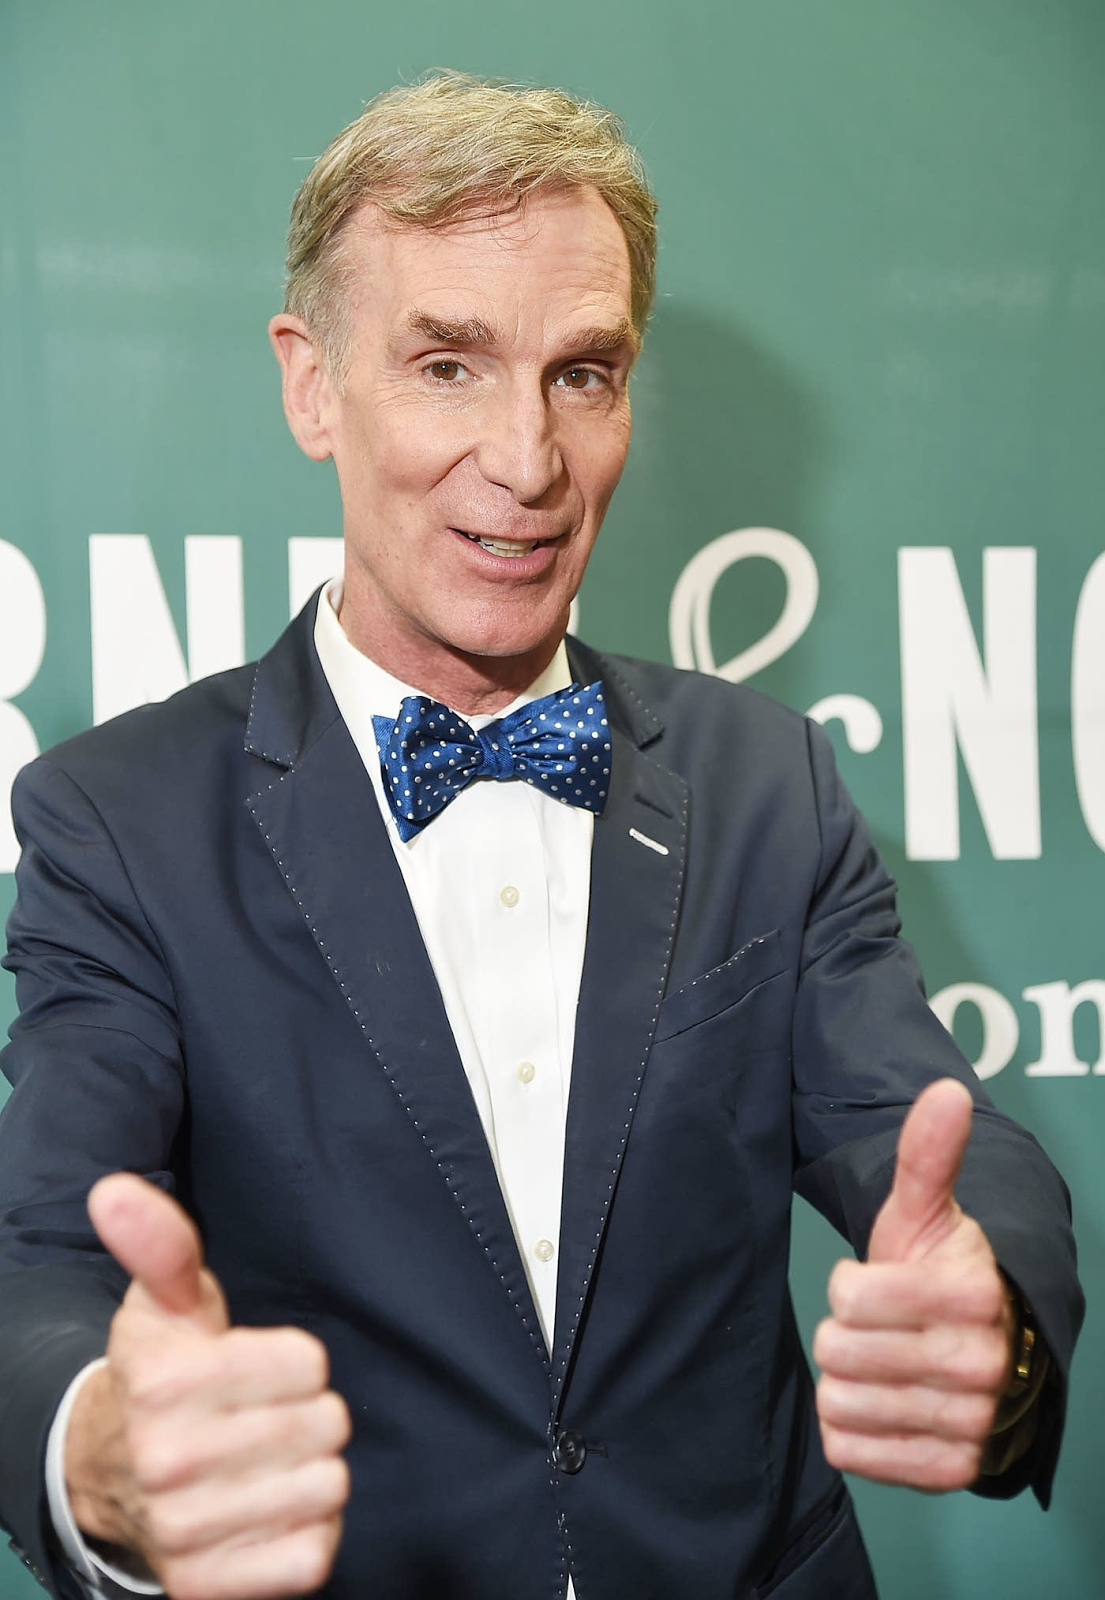 Bill Nye The Science Guy Videos Natural Resources